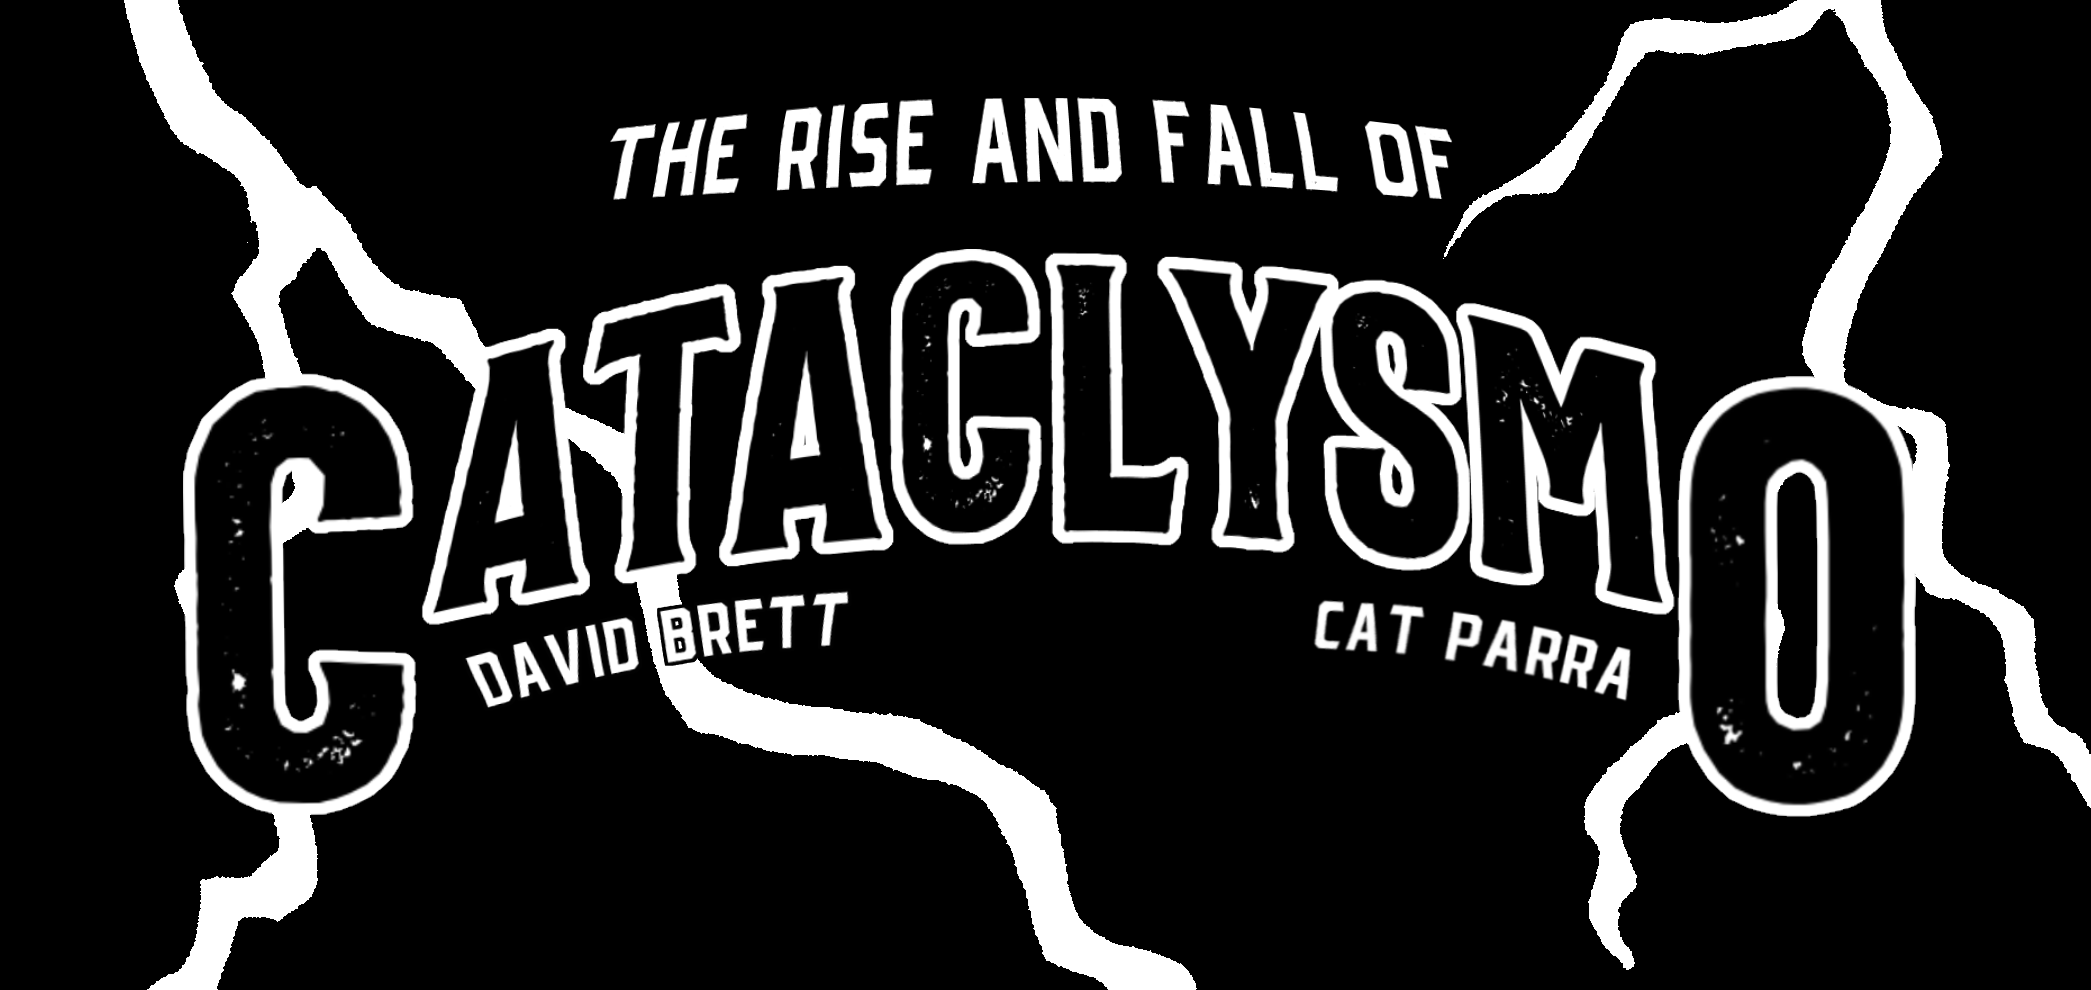 The Rise and Fall of Cataclysmo